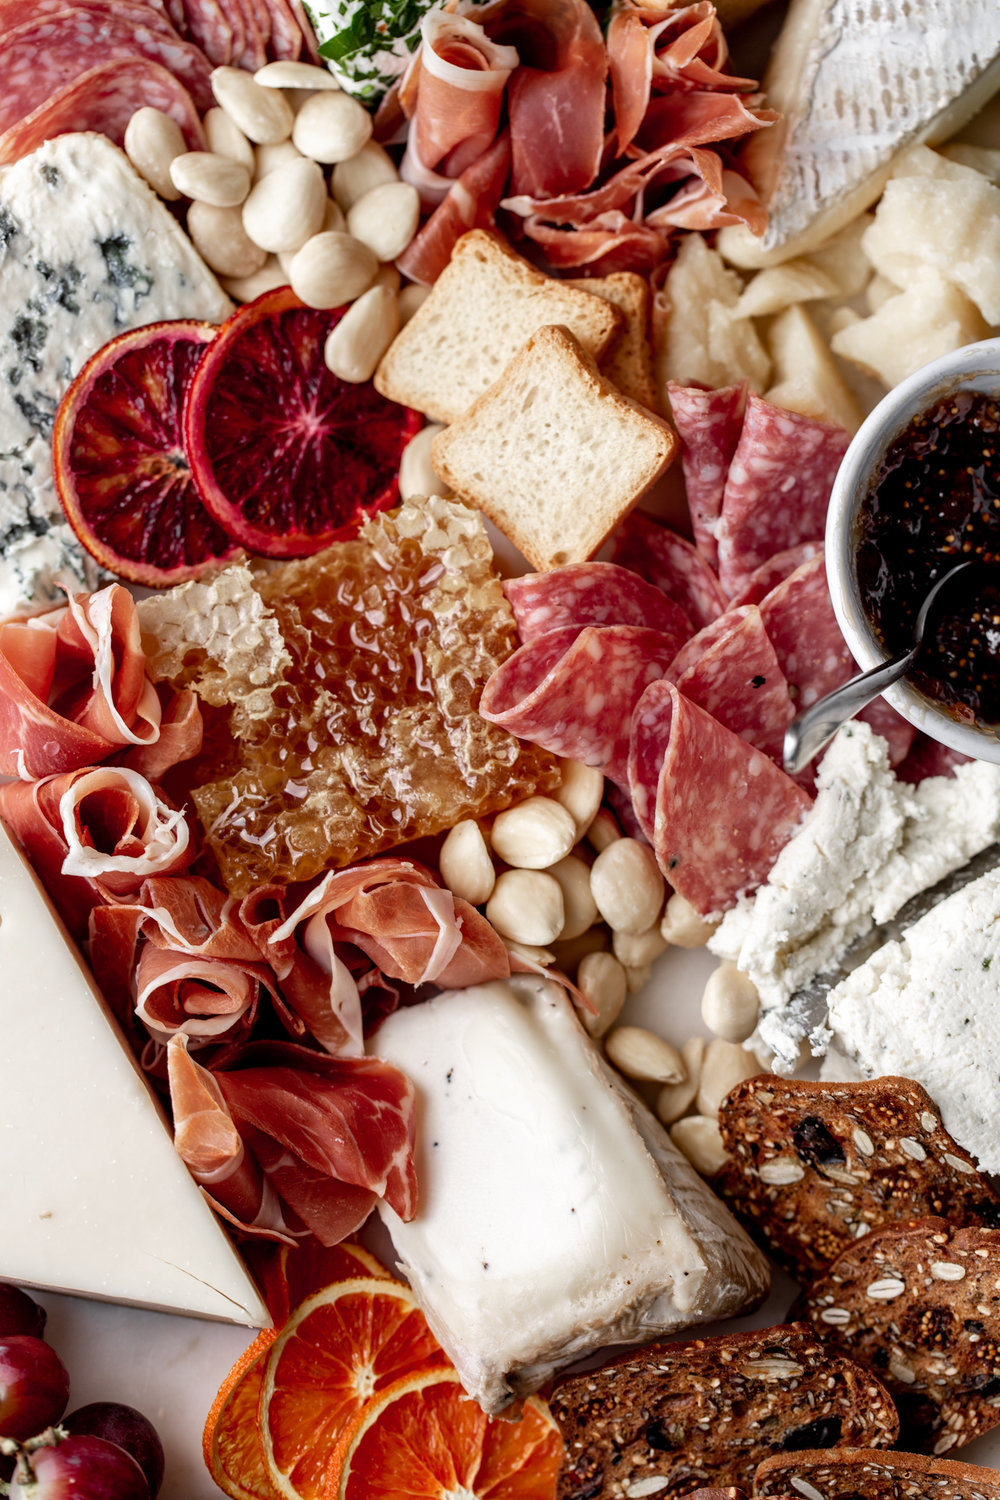 How to put together a cheese and charcuterie board closeup